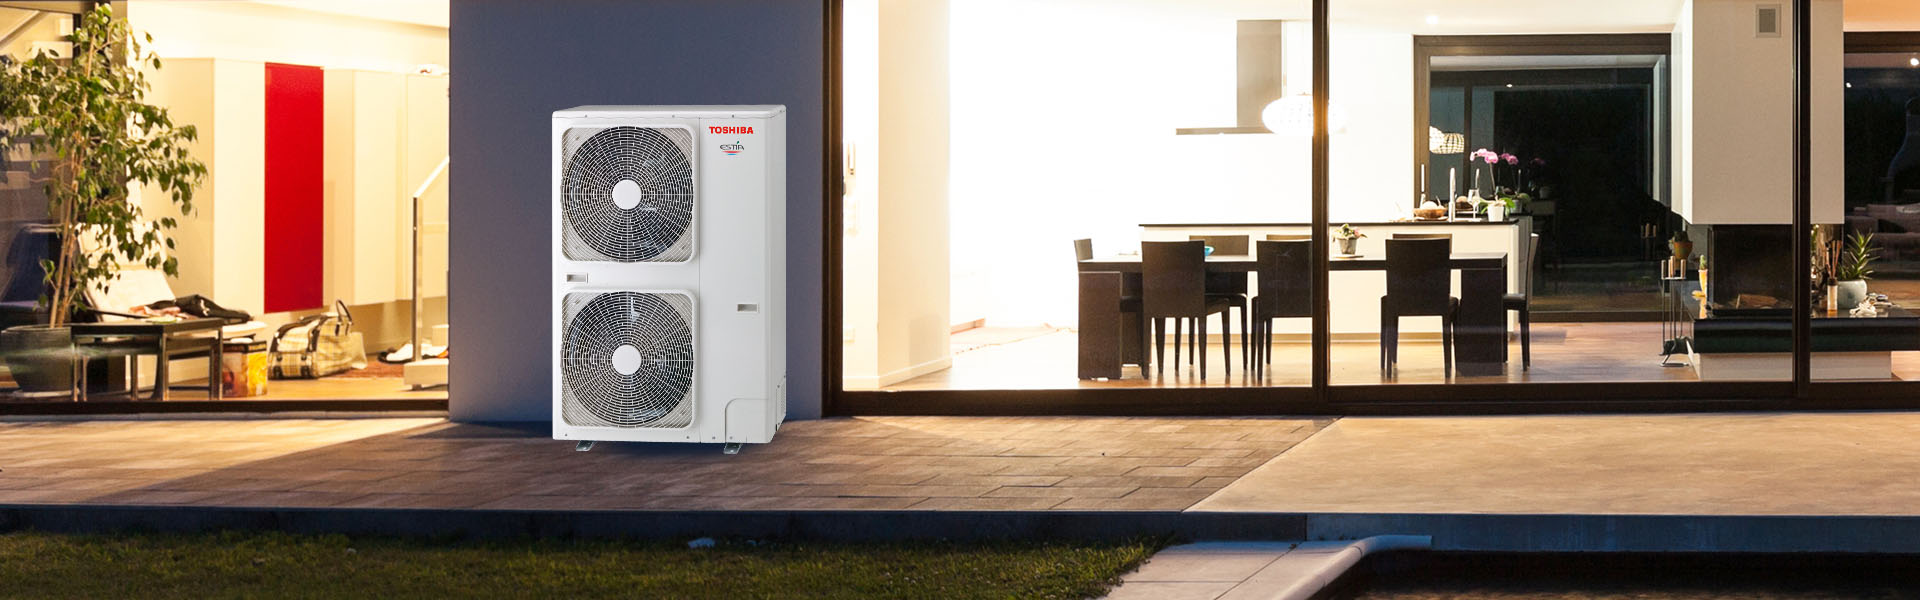 Heat Pumps: the most cost-efficient heating solution that respects the environment